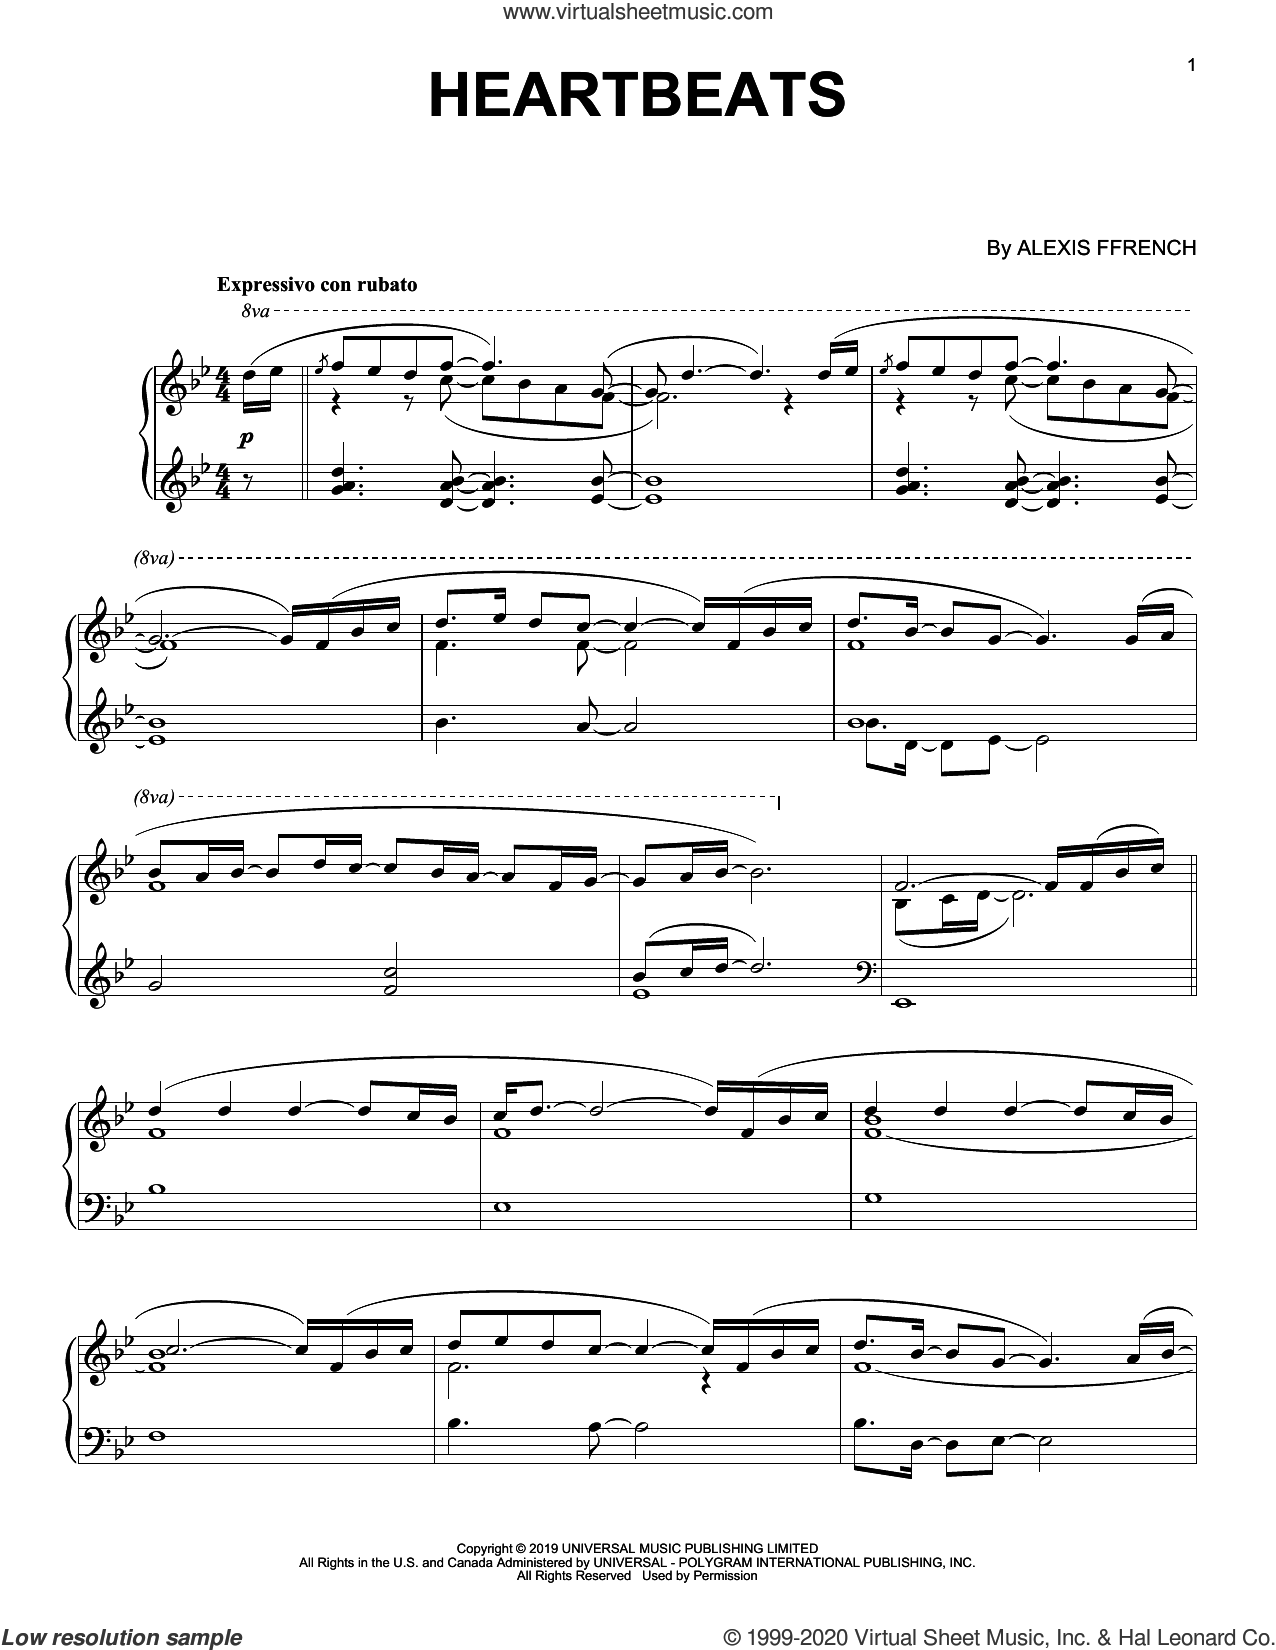 Heartbeats sheet music for piano solo by Alexis Ffrench, intermediate skill level